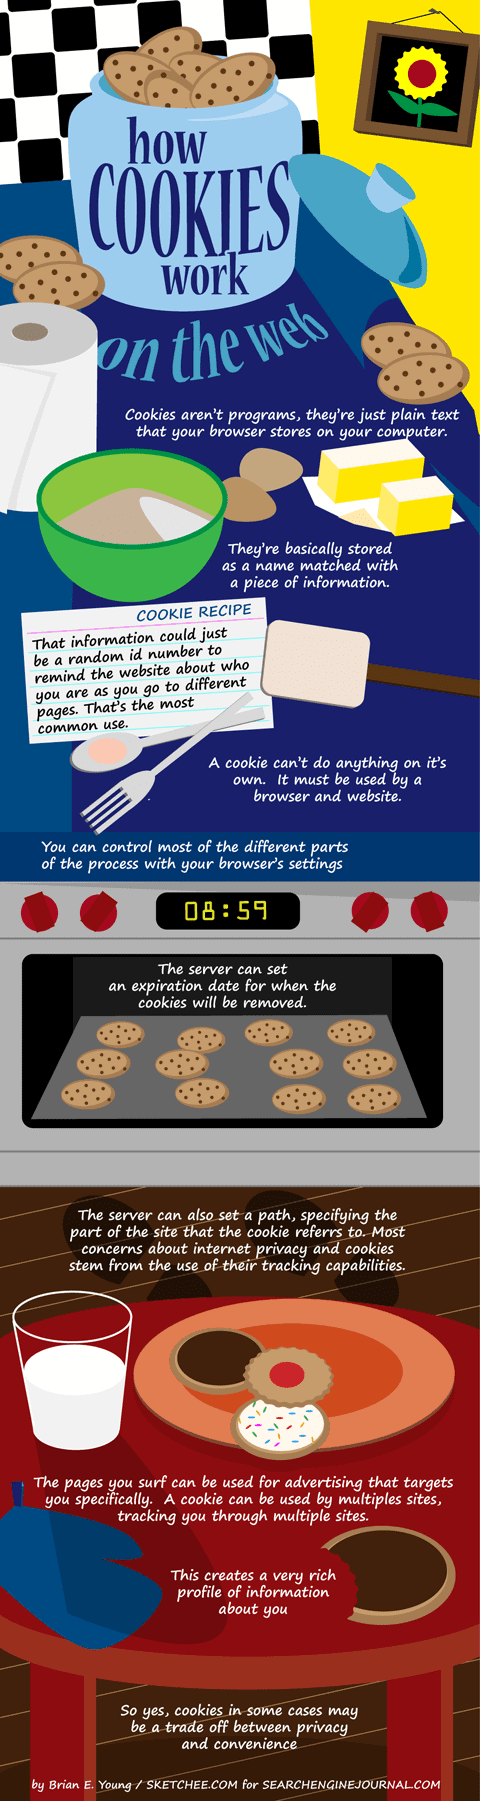 How Cookies Work on the Web Infographic